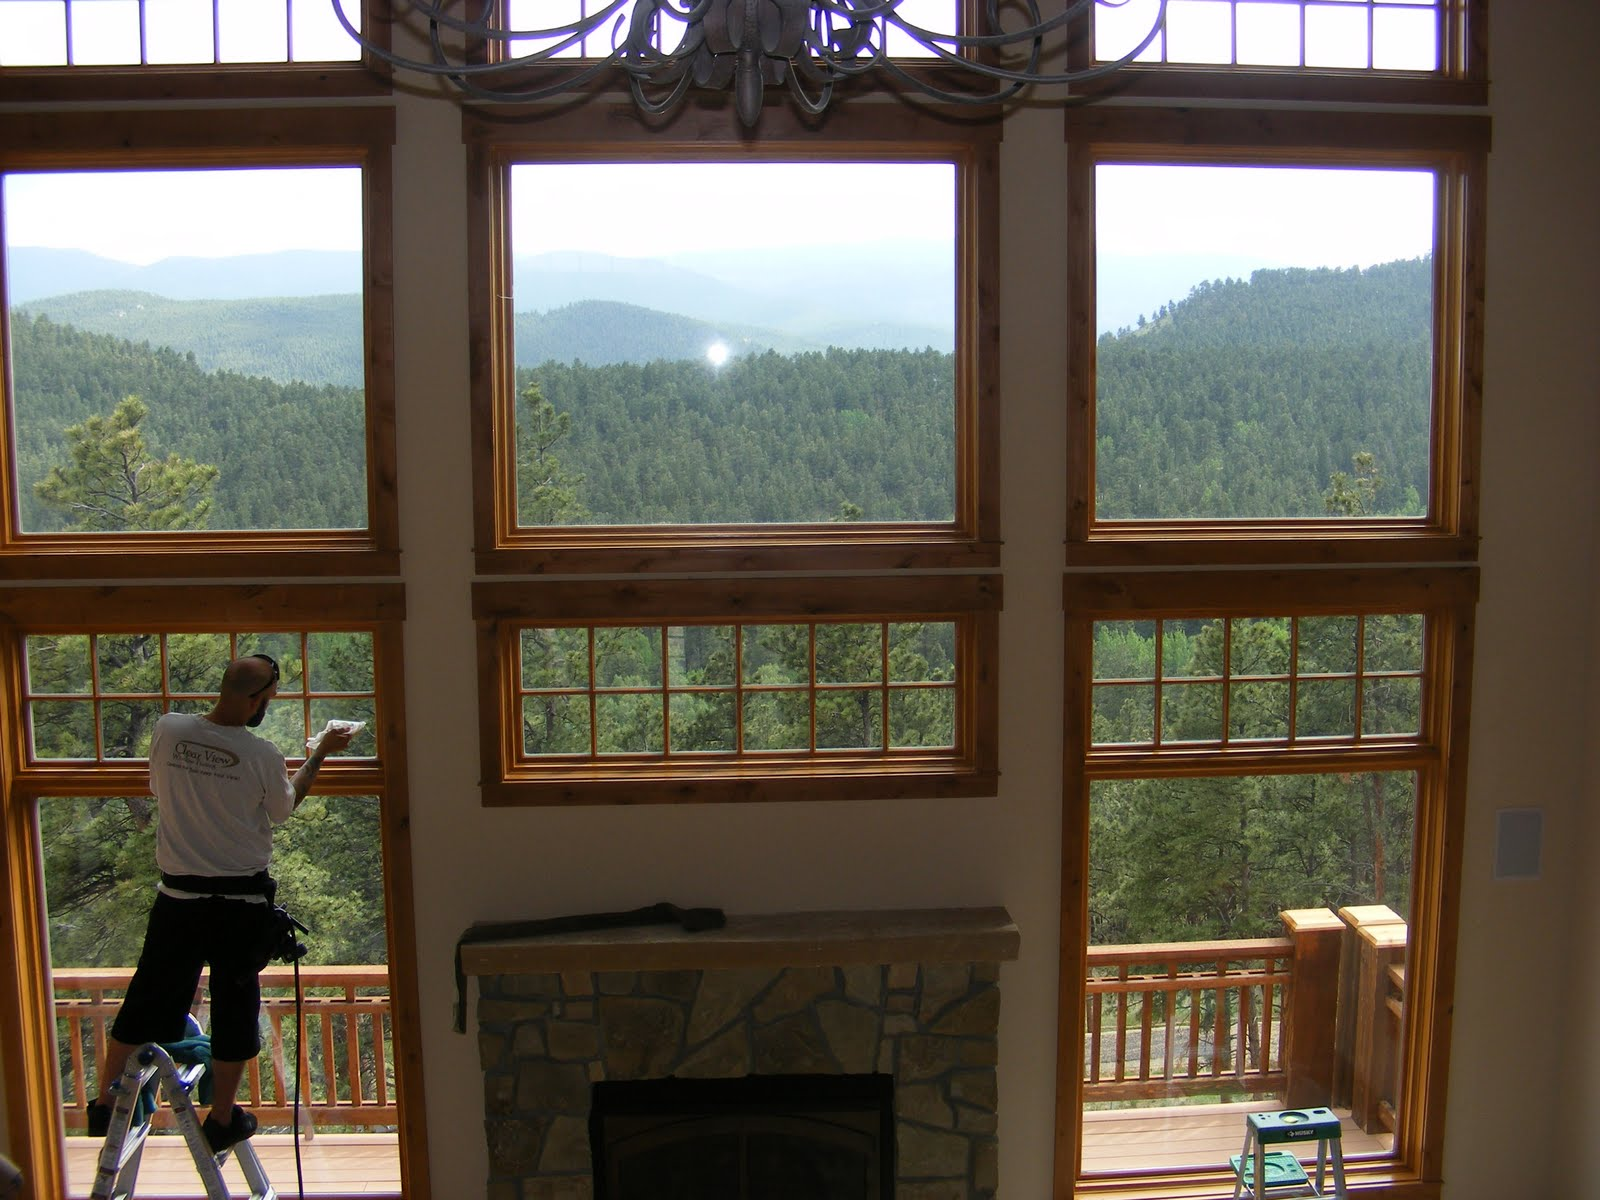 clear view window films evergreen home selects geo shield film for sun protection. Black Bedroom Furniture Sets. Home Design Ideas